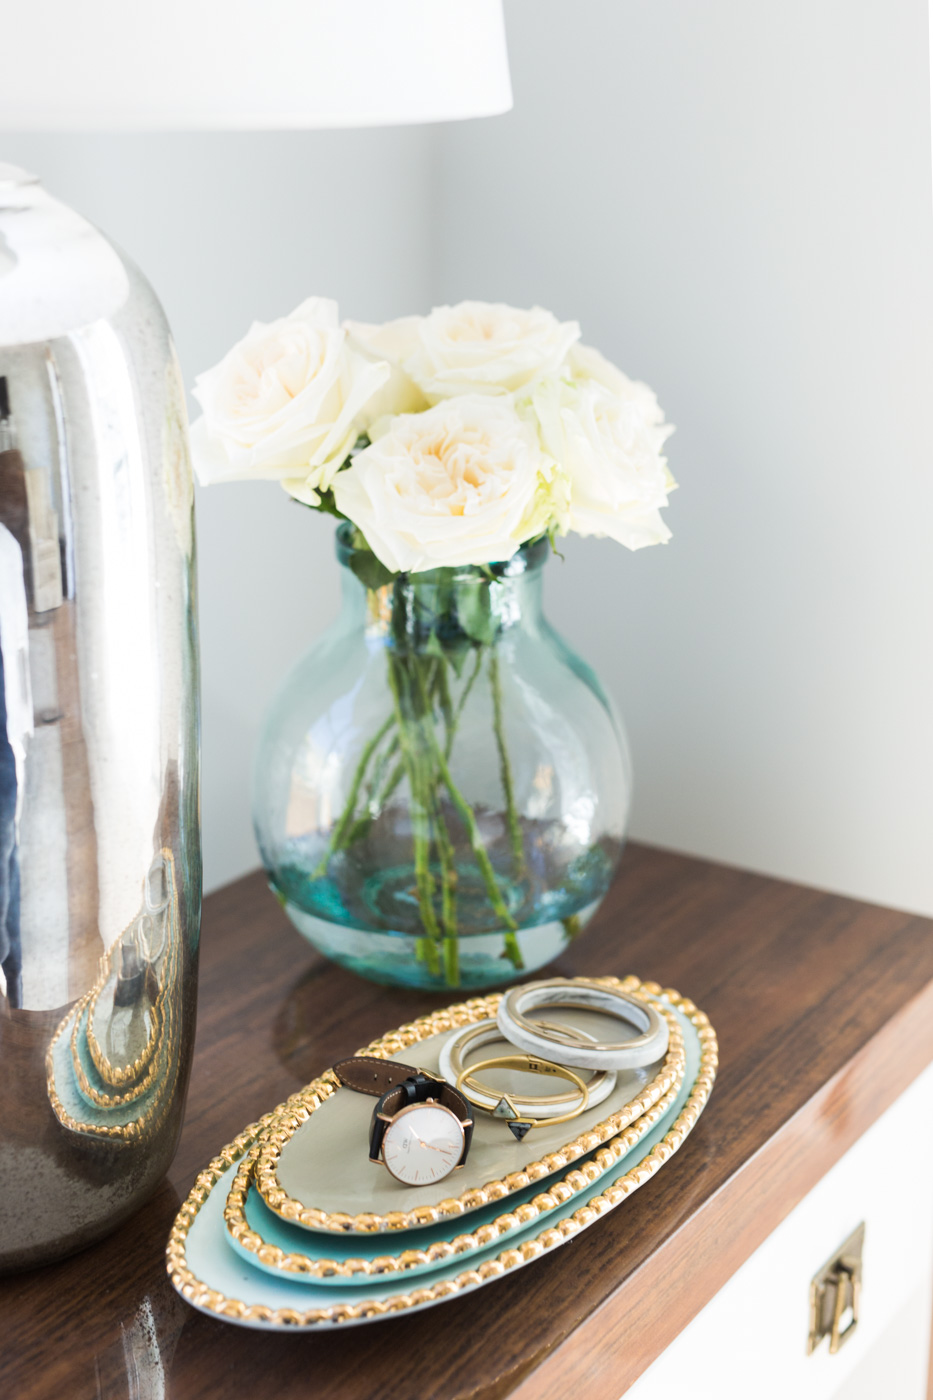 Decorative flowers and dishes on nightstand